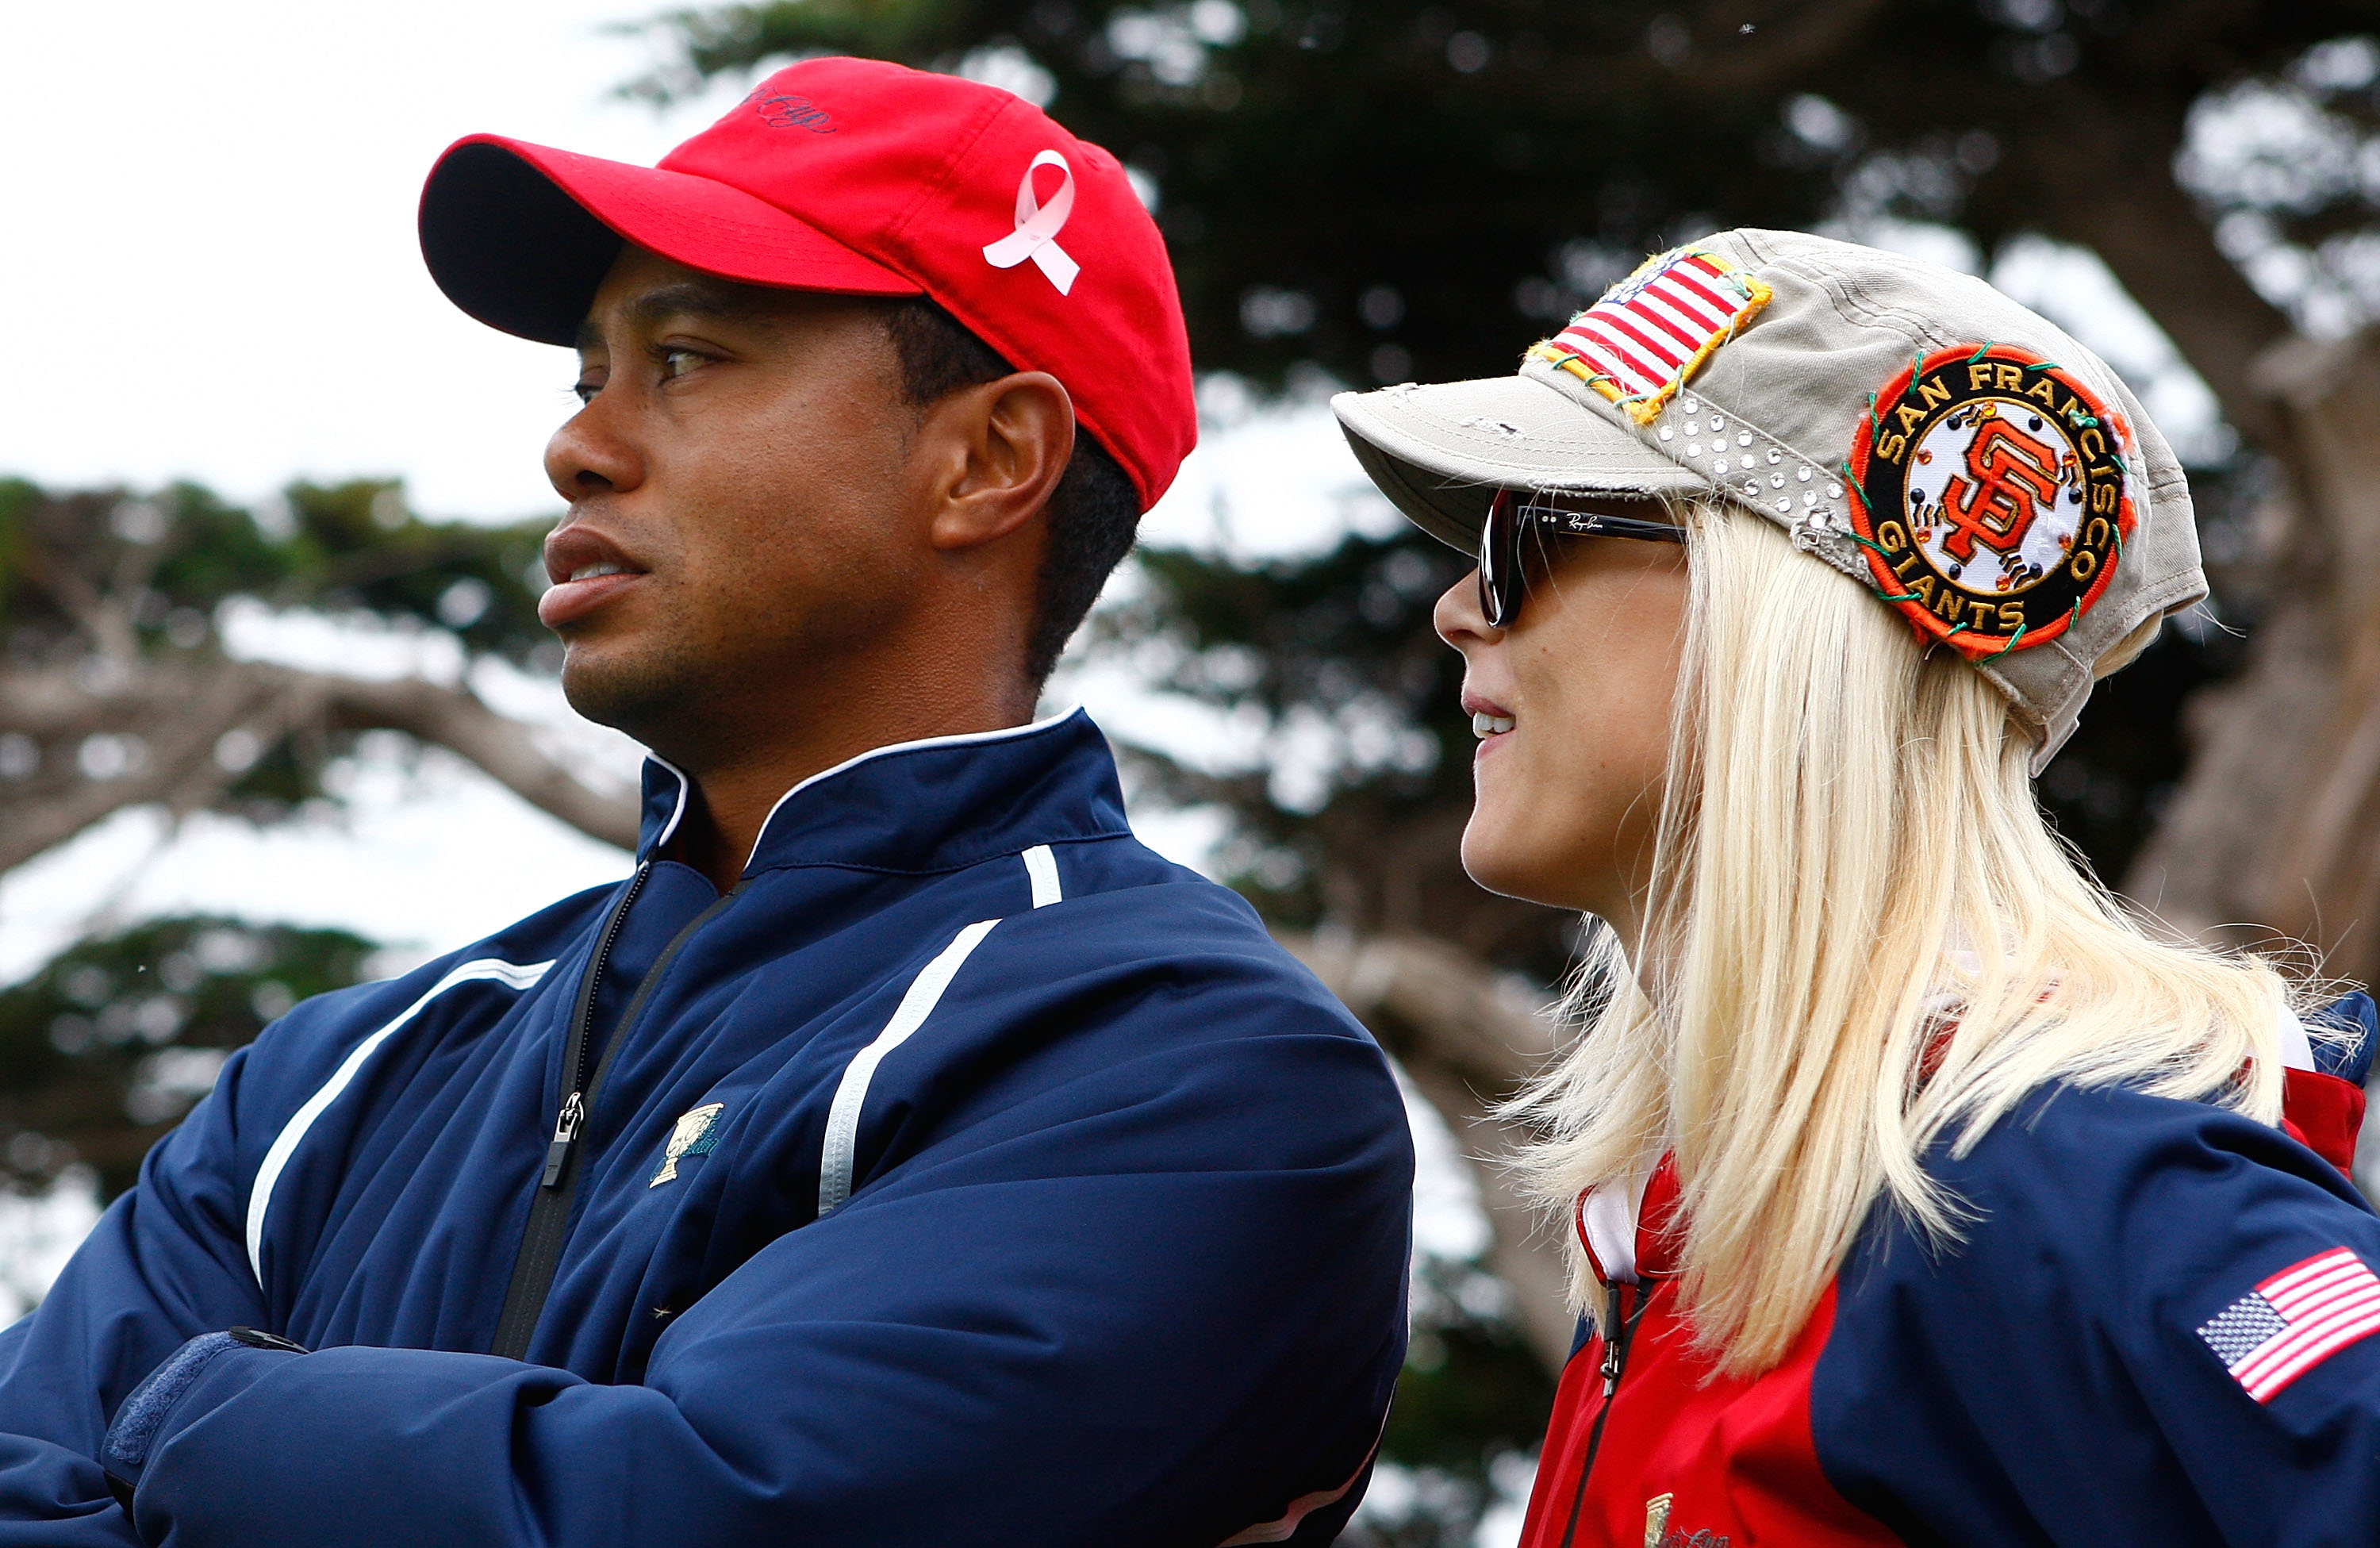 SAN FRANCISCO - OCTOBER 11: Tiger Woods of the USA Team waits with his wife